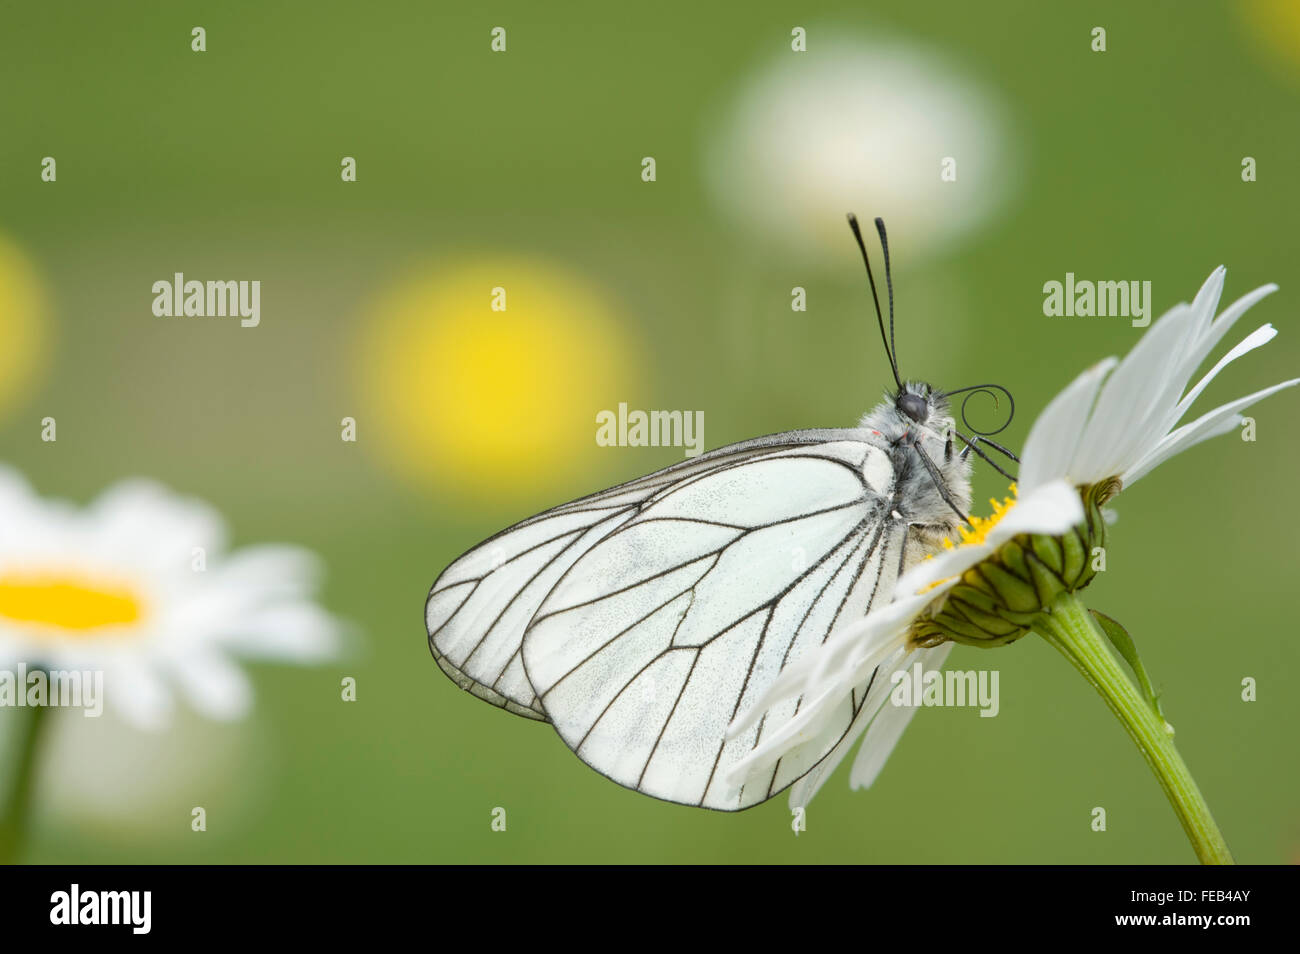 Black Veined White Butterfly,Aporia crataegi;a european butterfly and scarce vagrant to britain - Stock Image